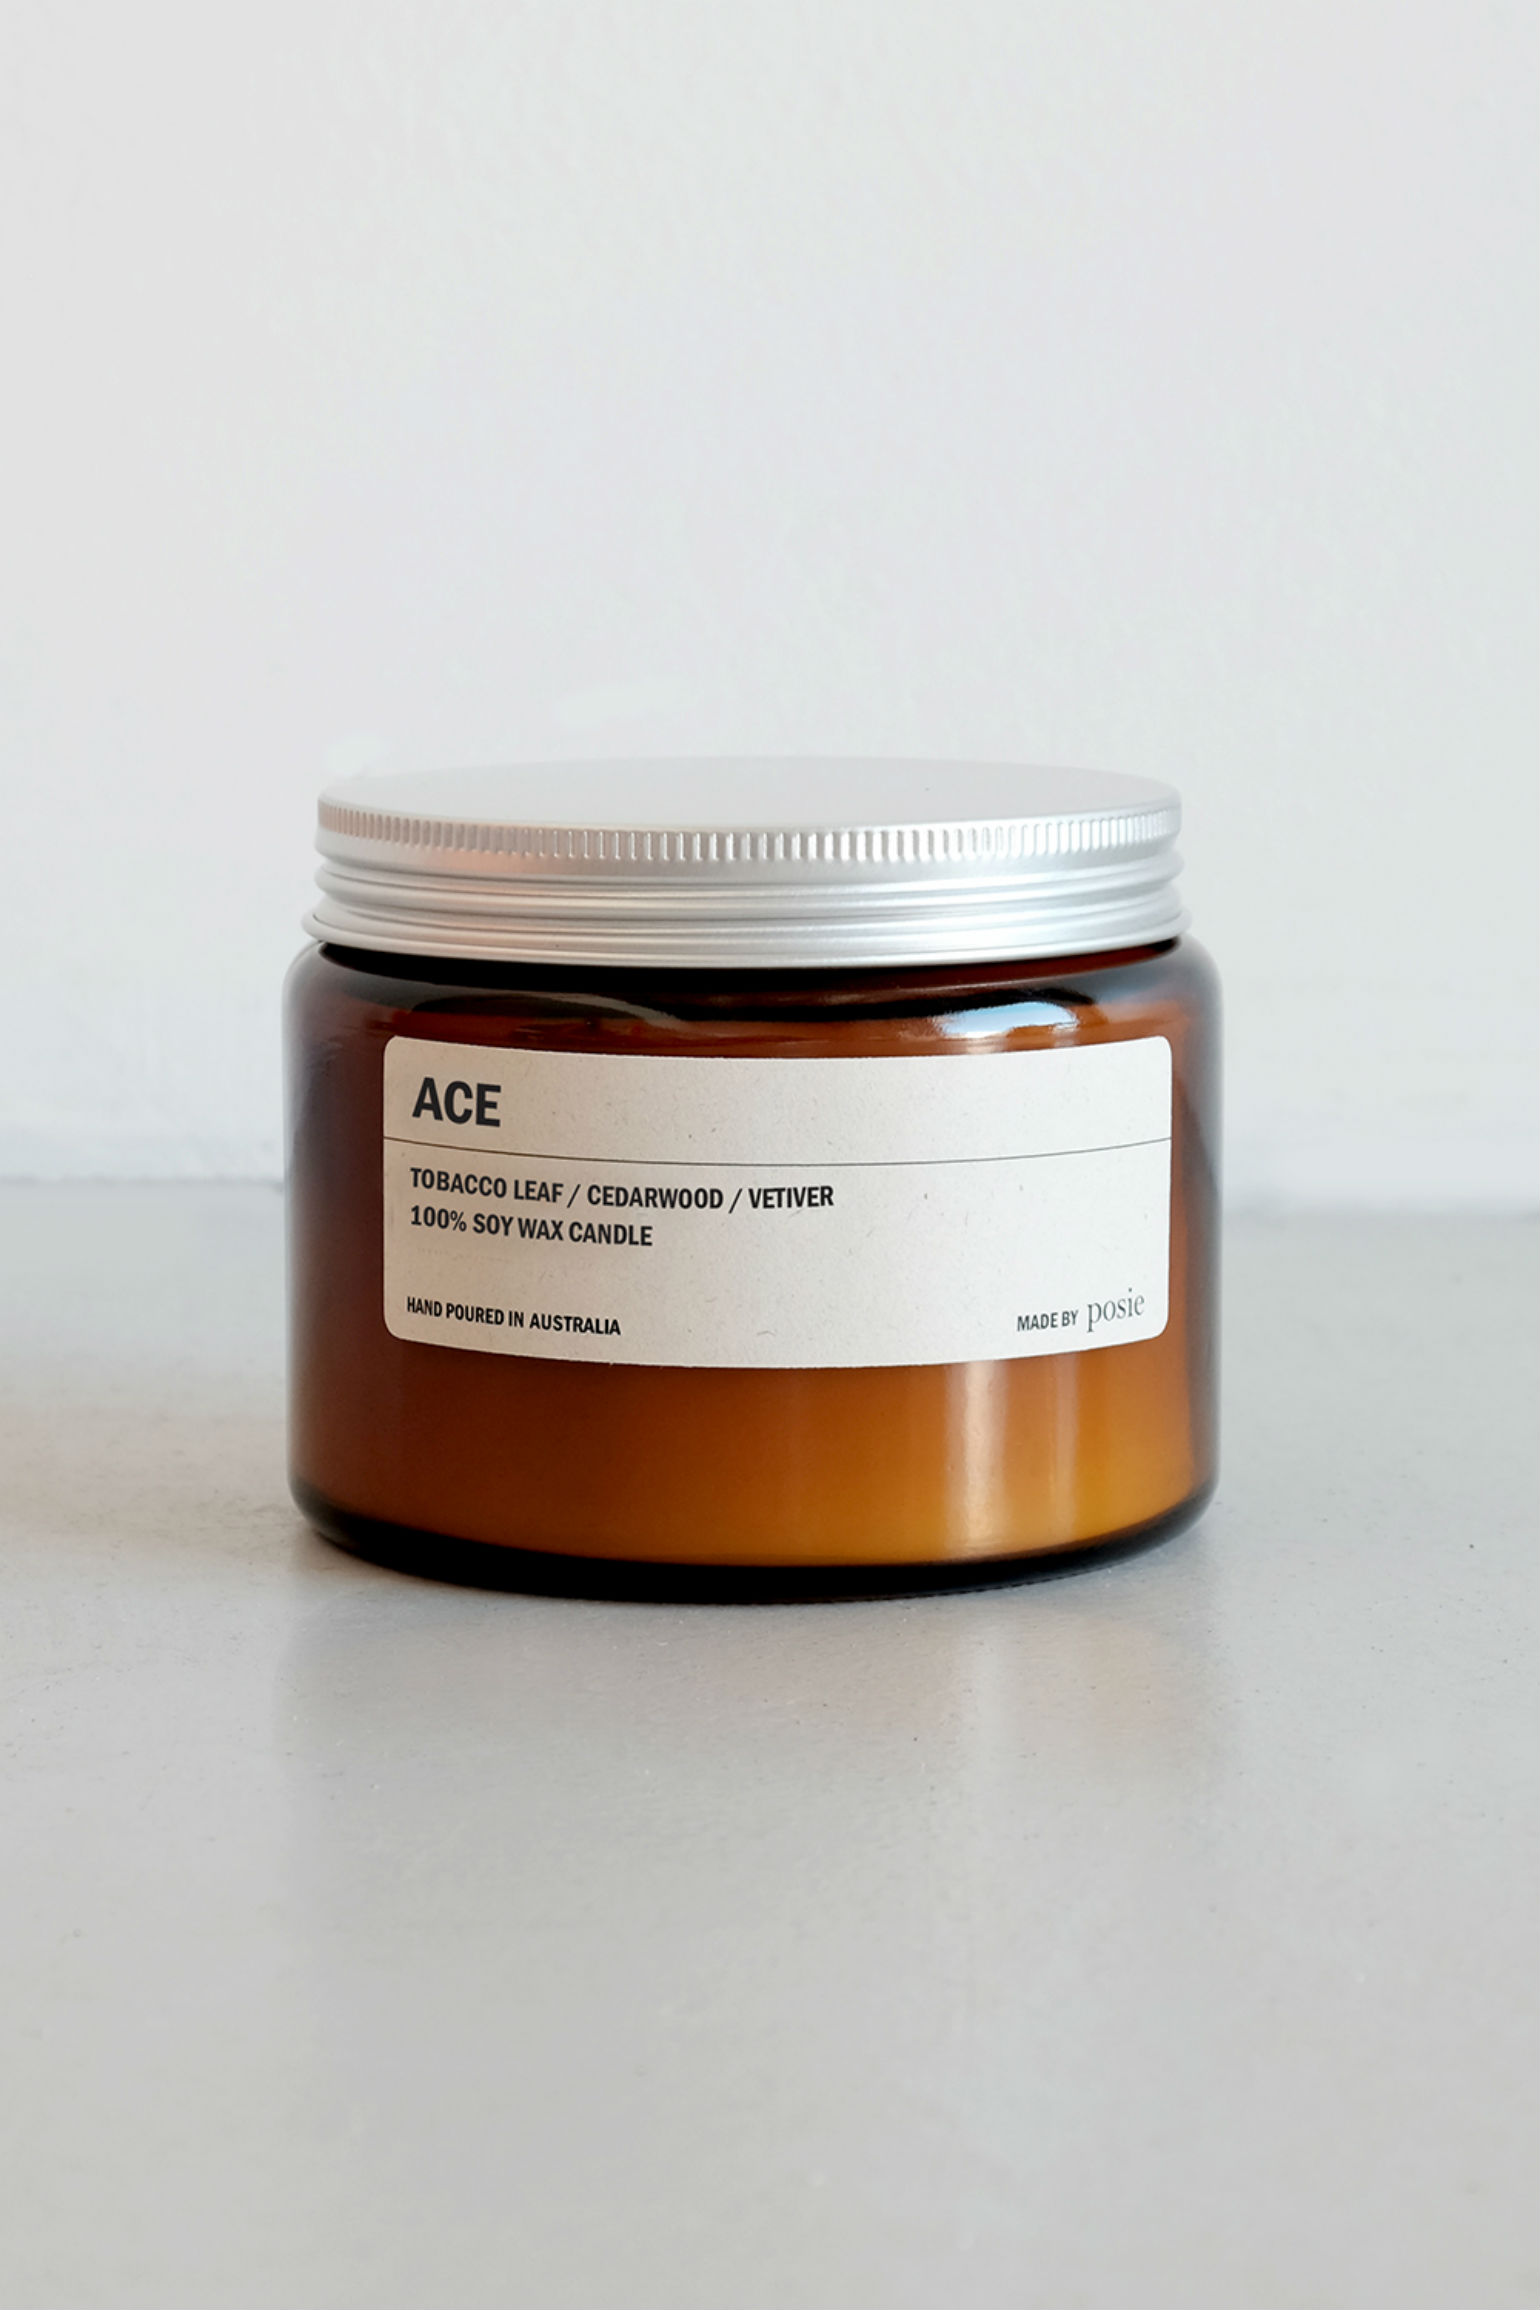 We are Posie 500g Amber Jar Soy Candle ACE